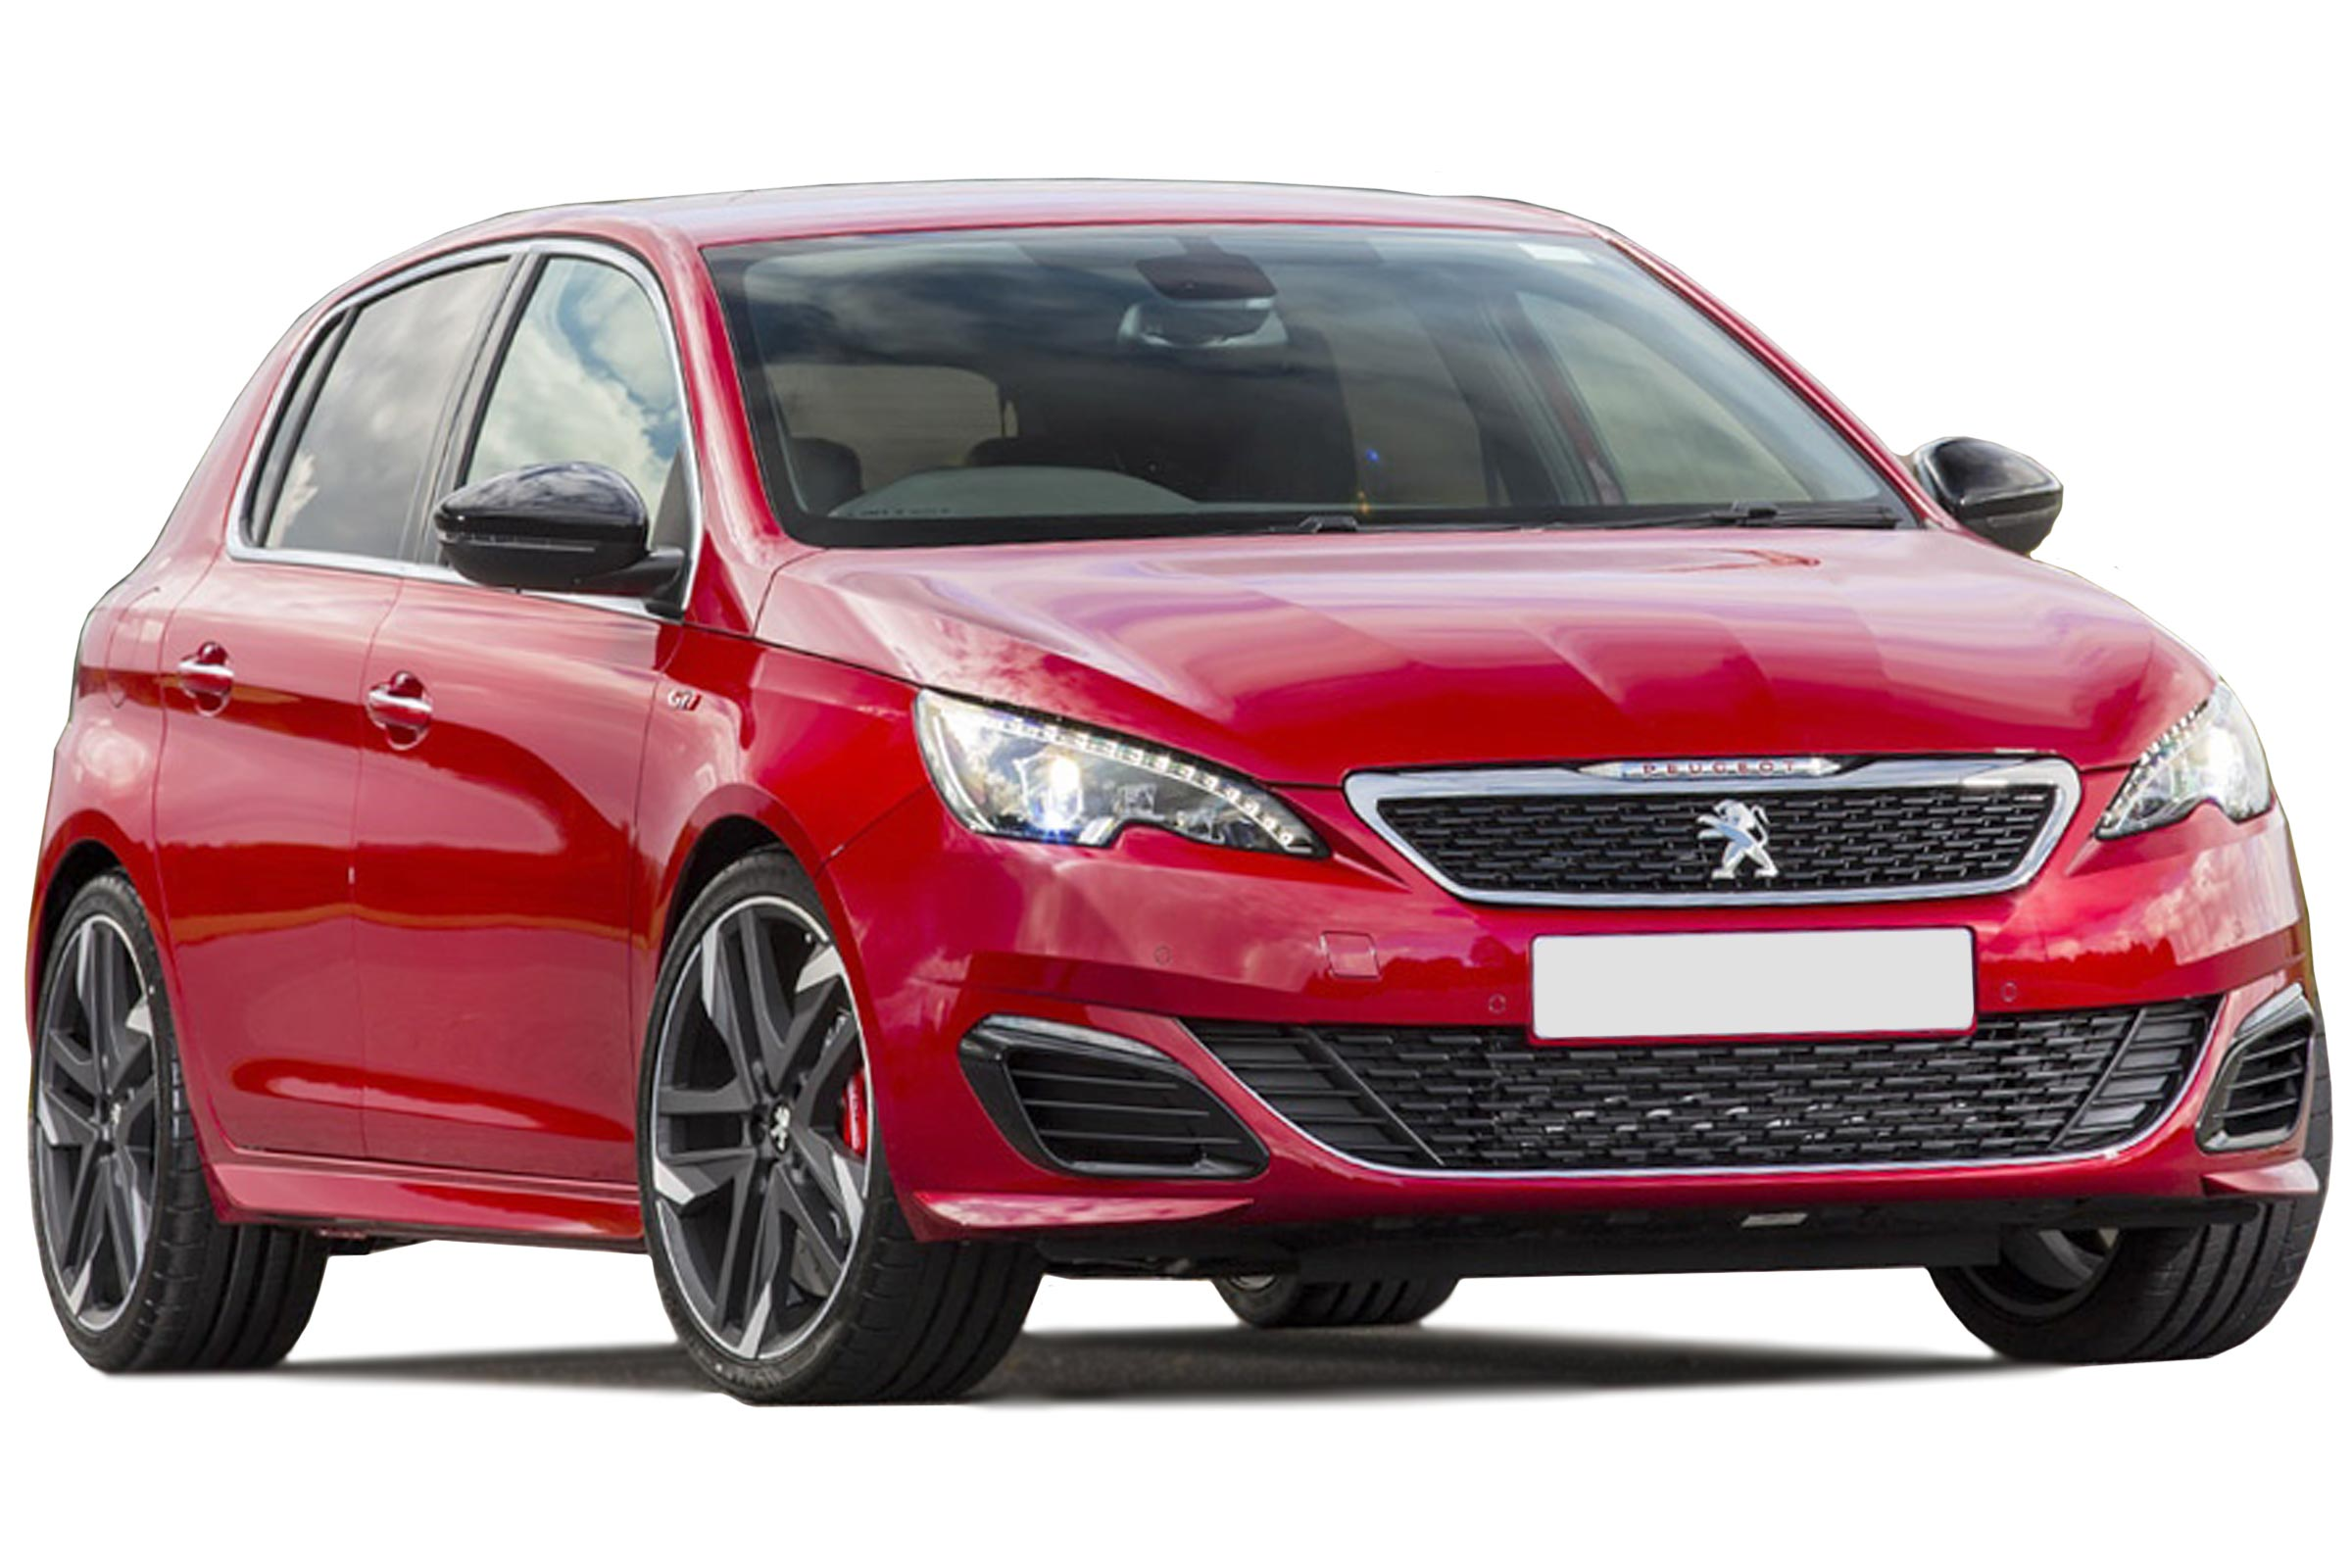 Peugeot 308 Gti Hatchback Owner Reviews Mpg Problems Reliability 2020 Review Carbuyer